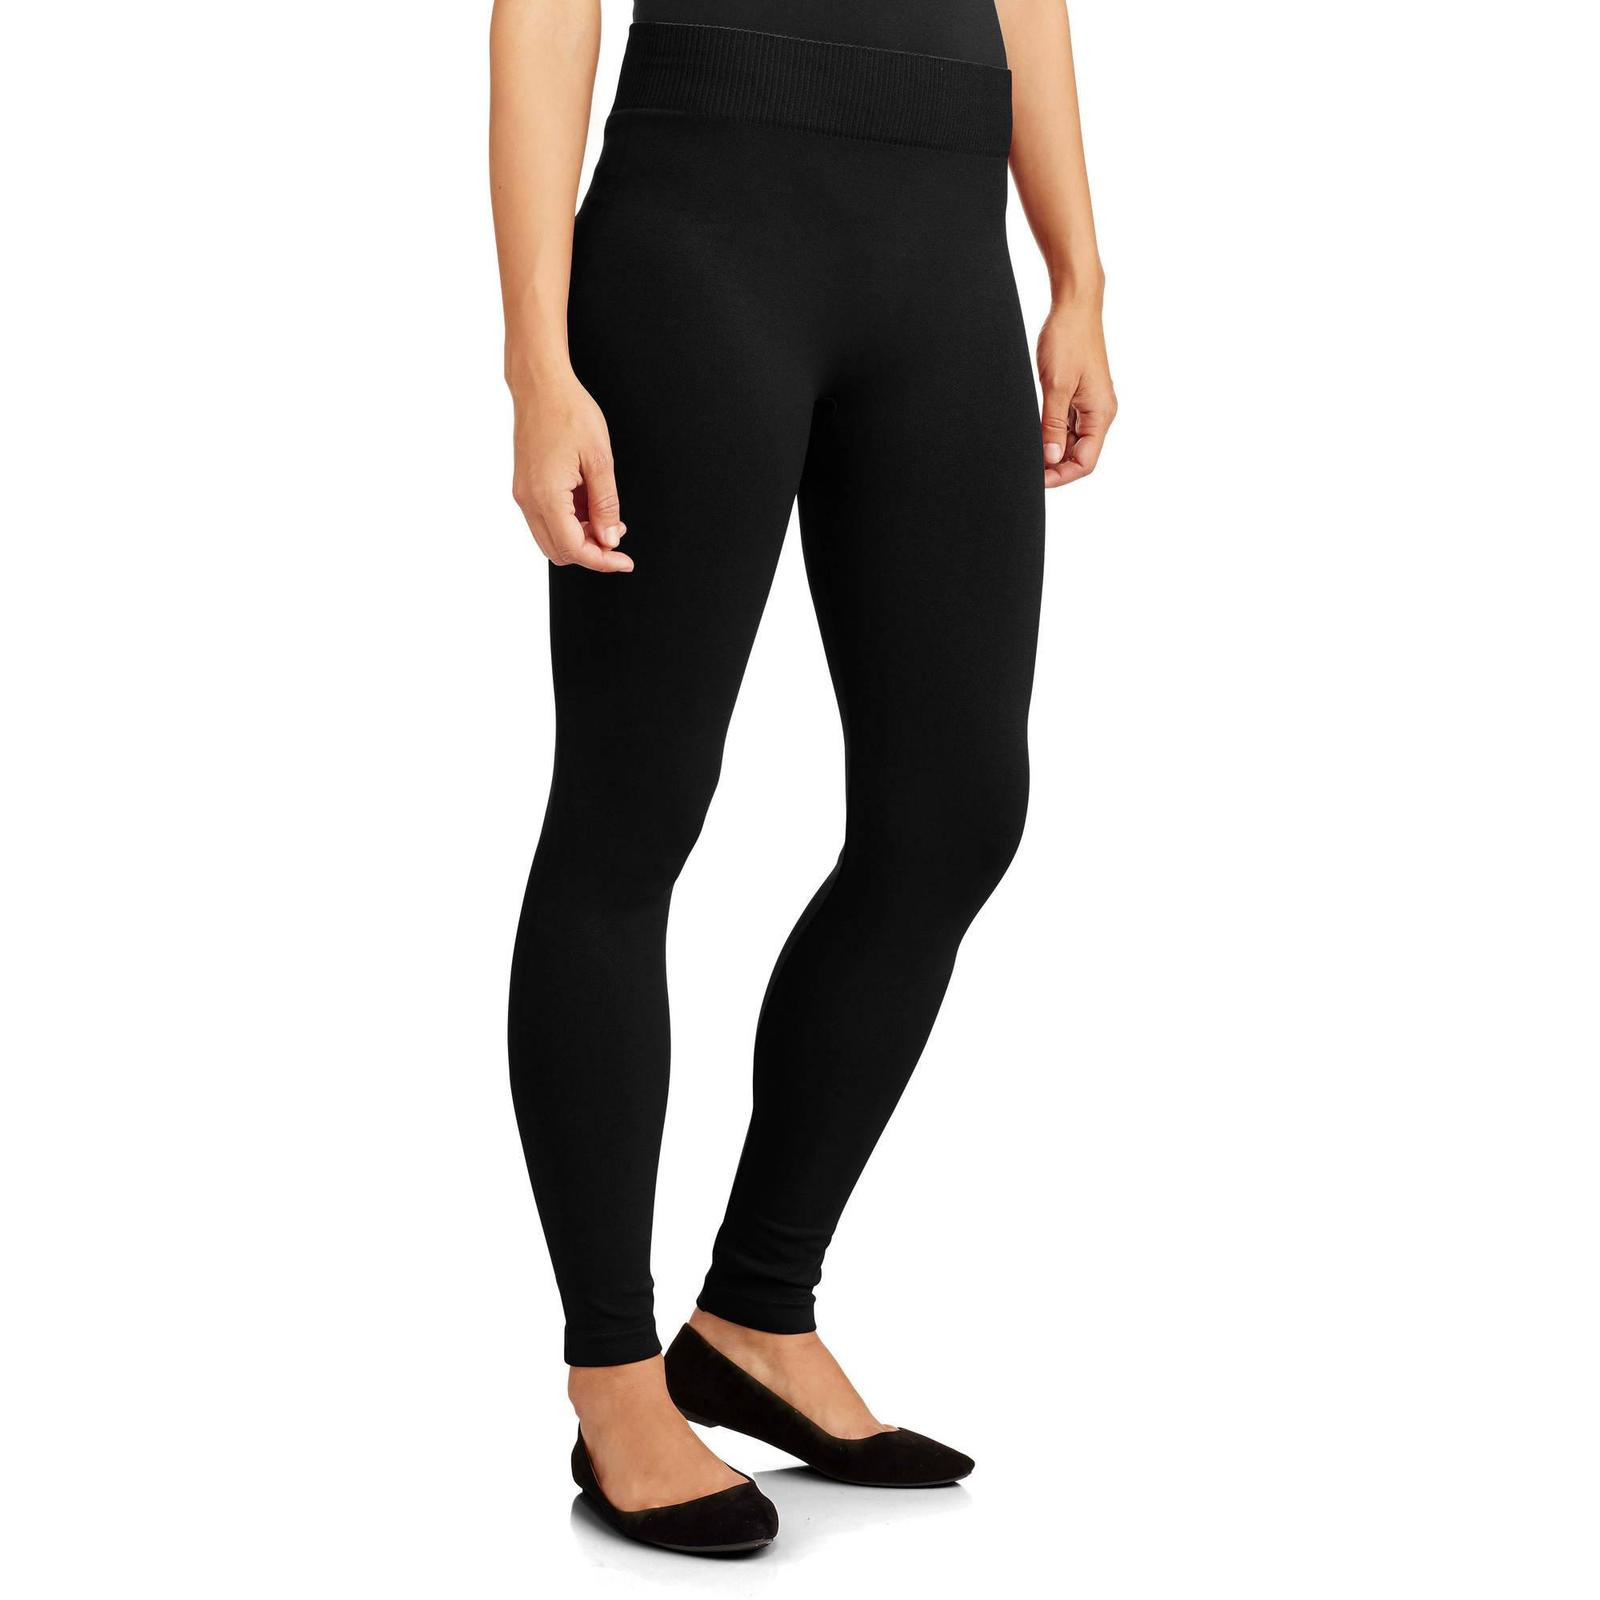 1c89237126c41 Women's Pregnant Fitness Exercise Athletic Apparel Workout Walk Seamless  Legging - $25.99 · Advanced search for Faded Glory Legging